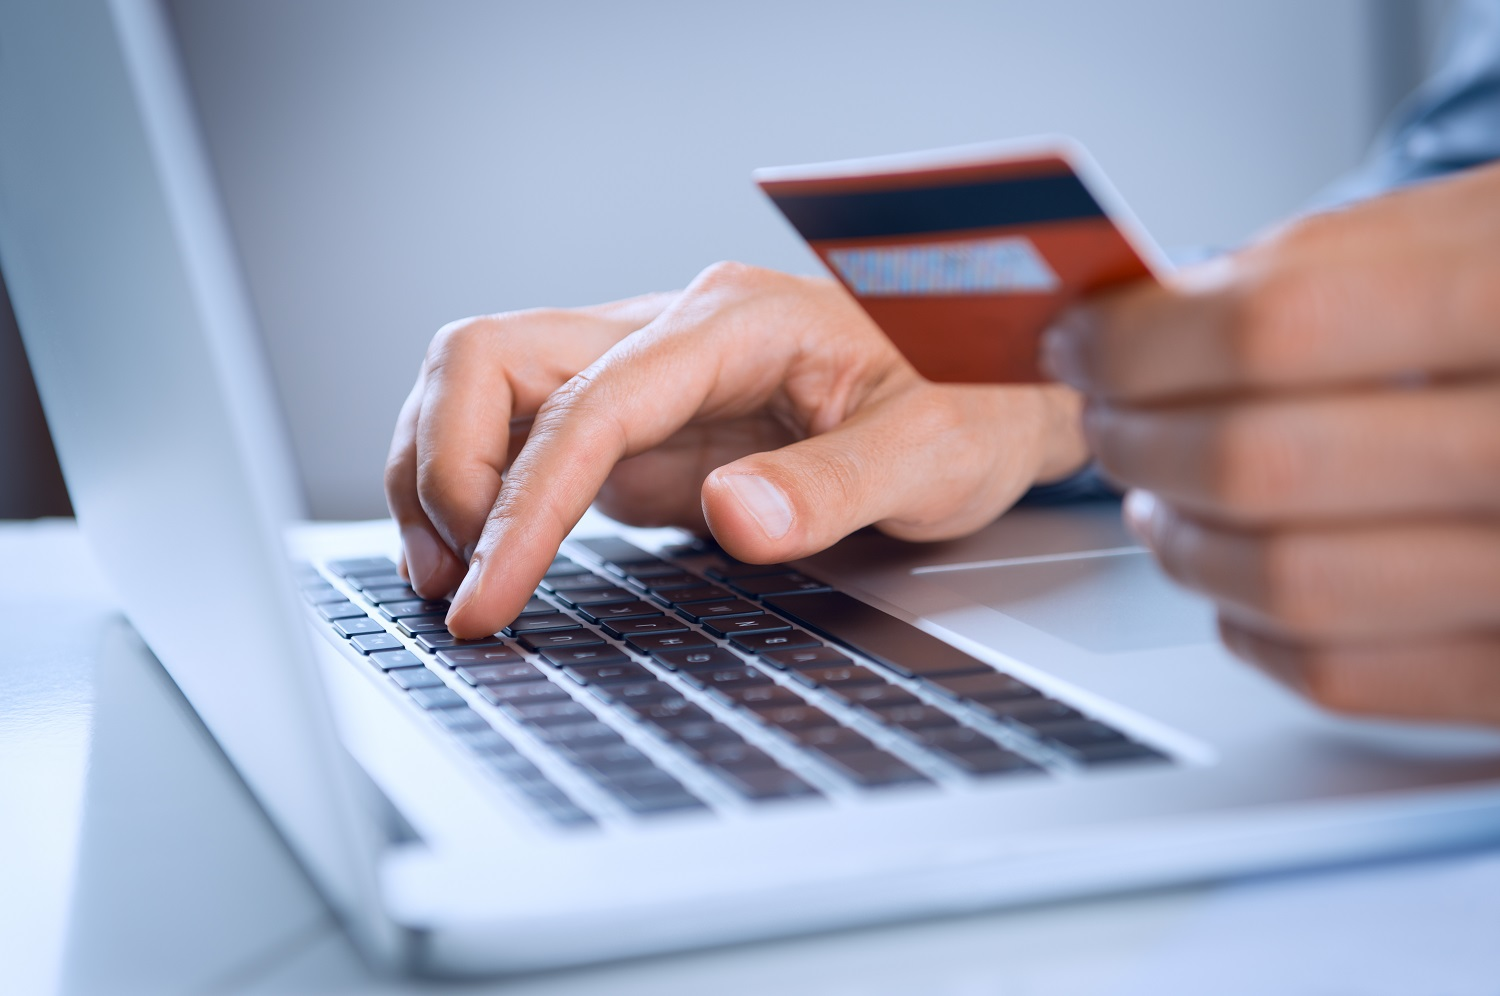 Shopping Online And Safety - How Safe is Online Shopping?